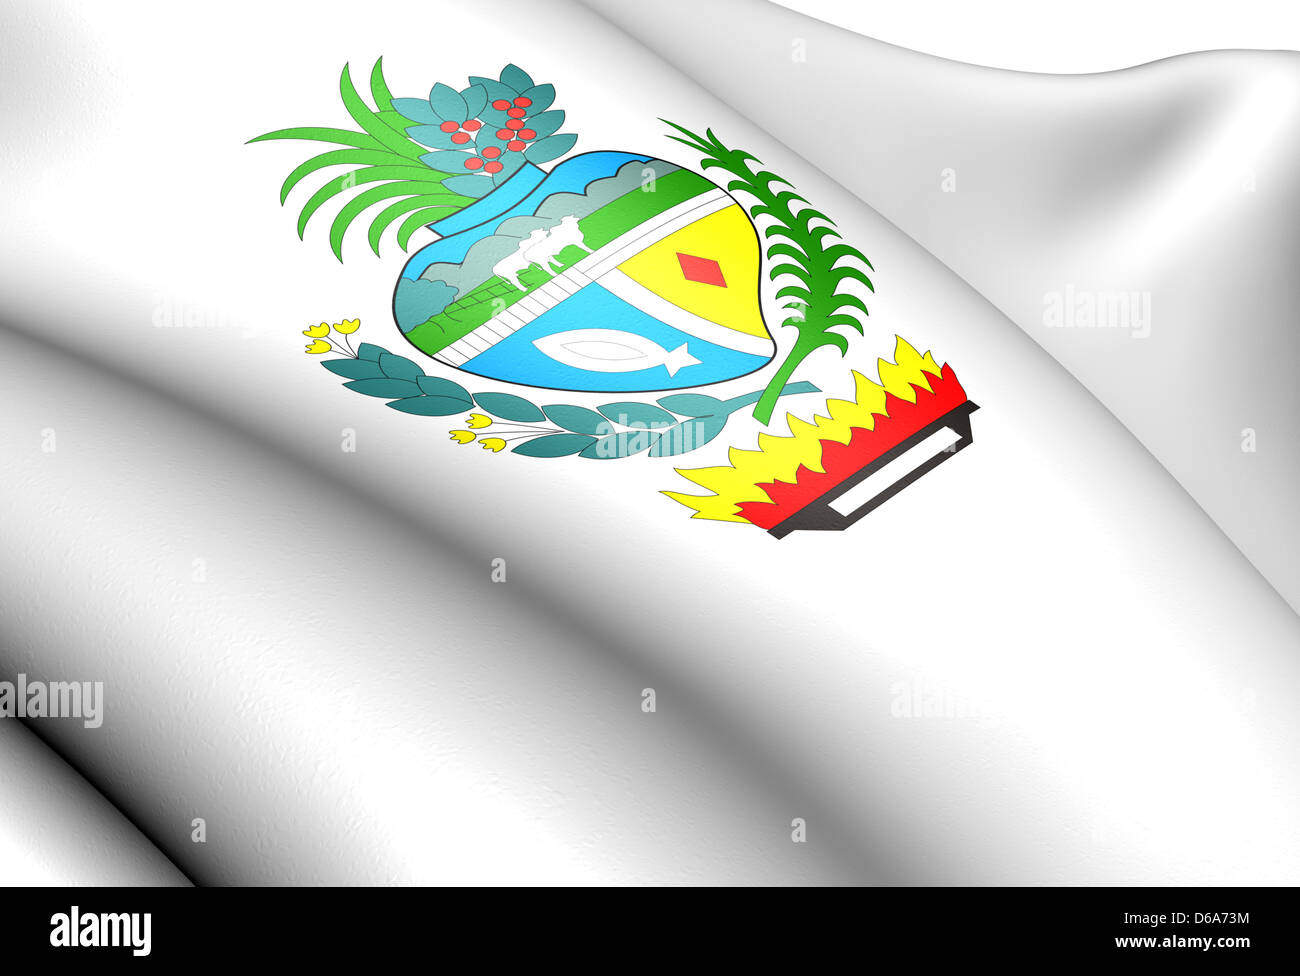 Goias coat of arms - Stock Image